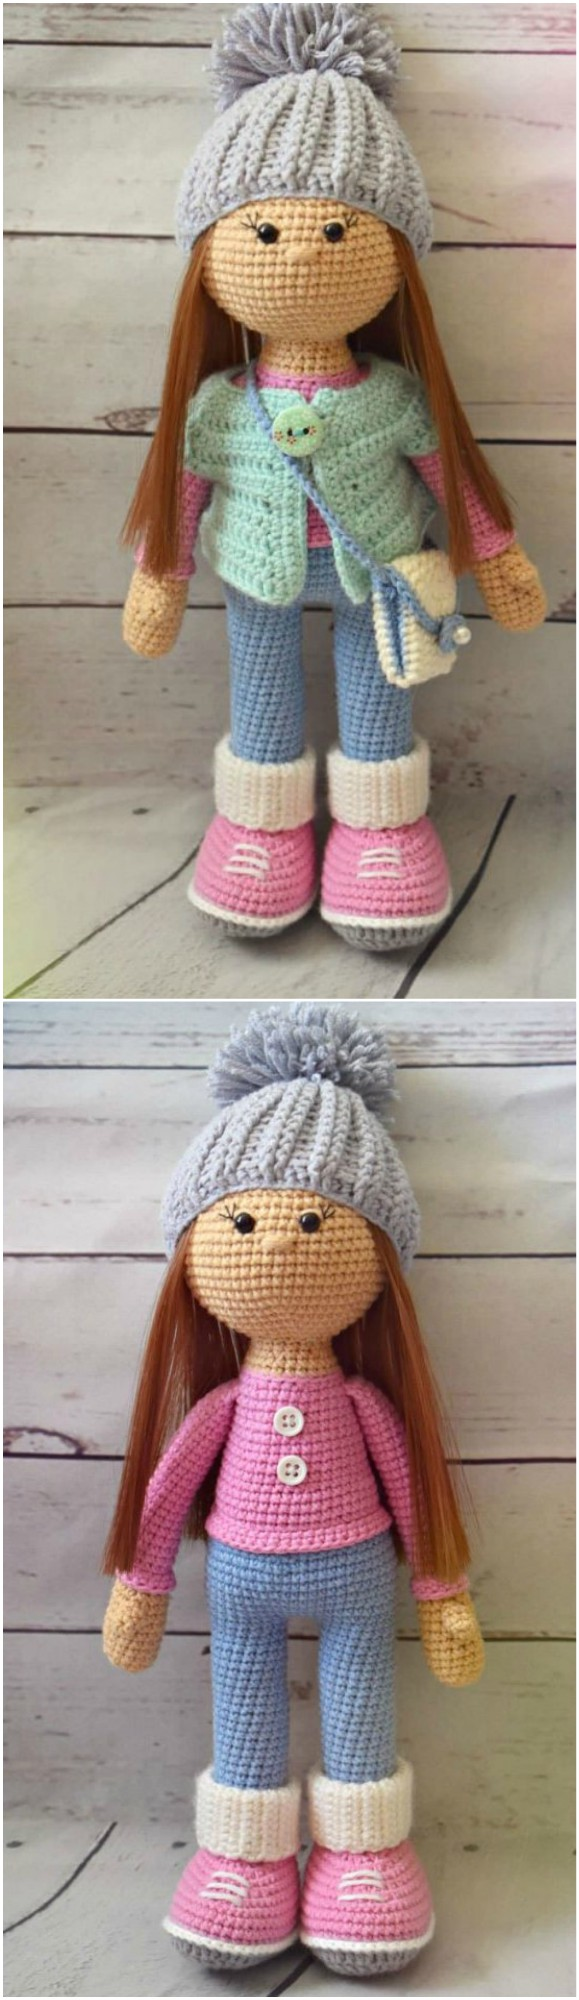 Amigurumi Doll Free Pattern | Crochet dolls free patterns, Crochet ... | 2000x579